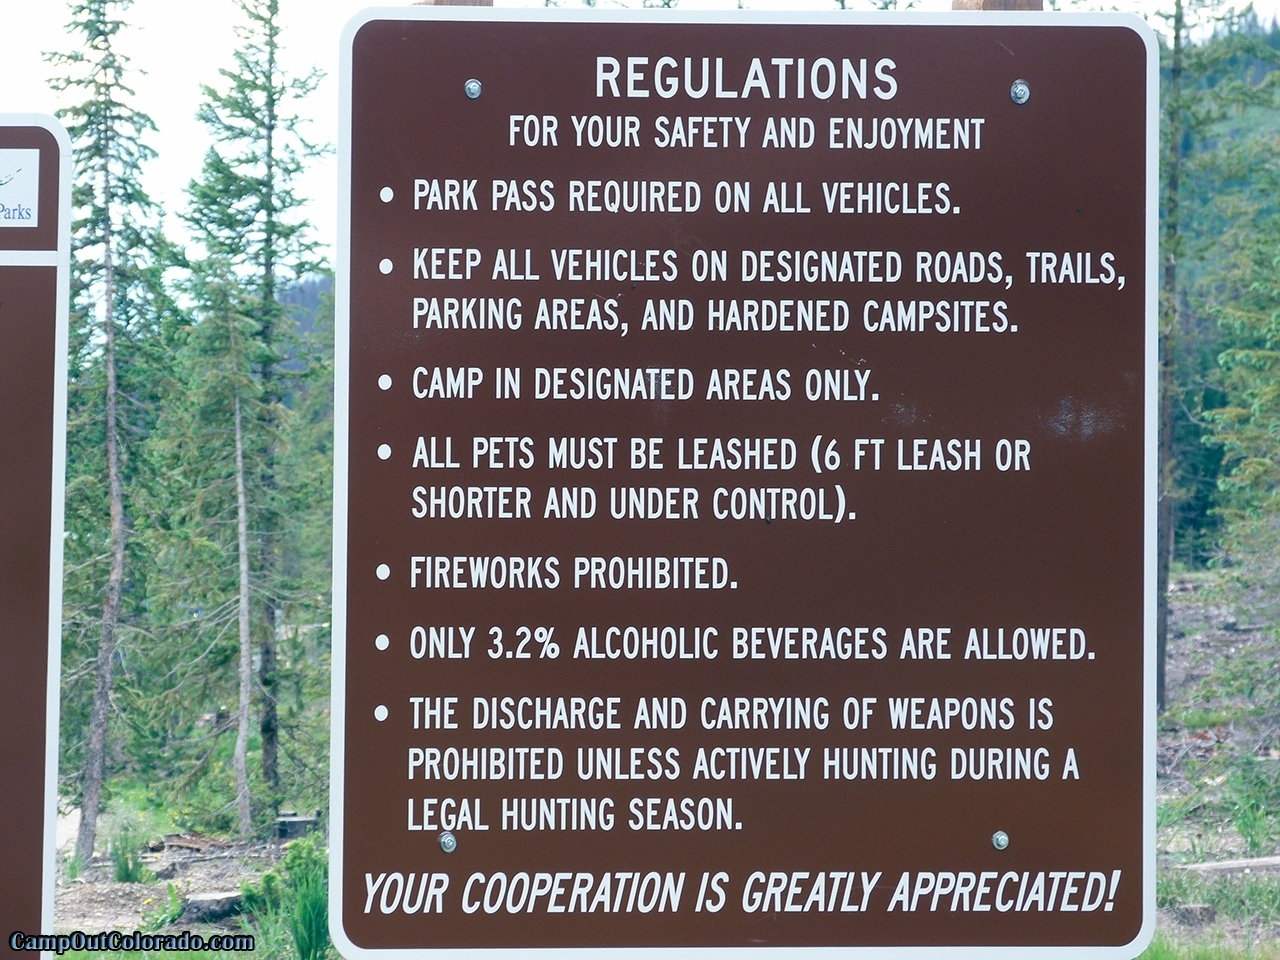 camp-out-colorado-ranger-lakes-campground-regs.jpg